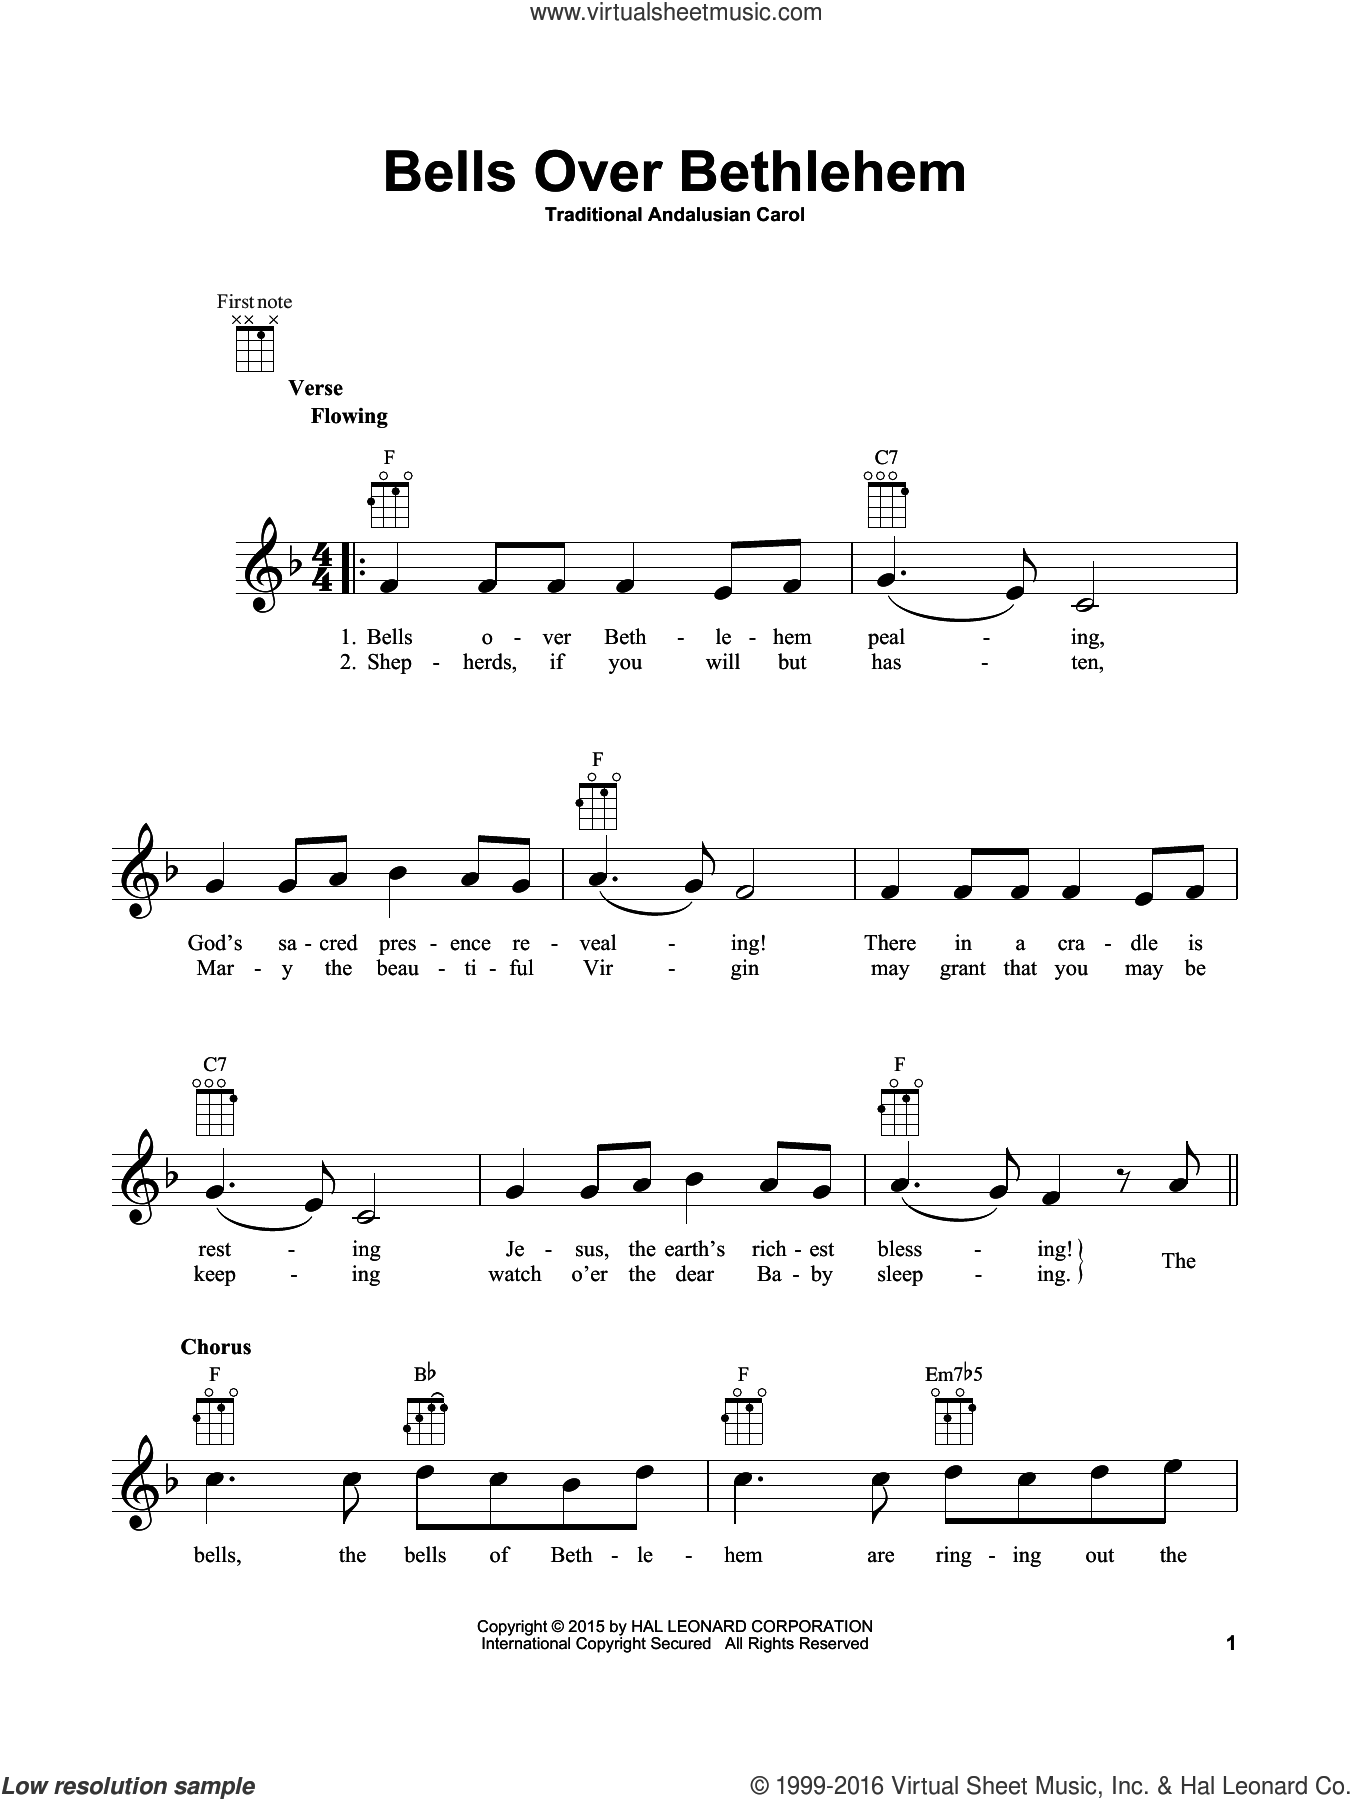 Bells Over Bethlehem sheet music for ukulele by Traditional Andalusian Carol. Score Image Preview.